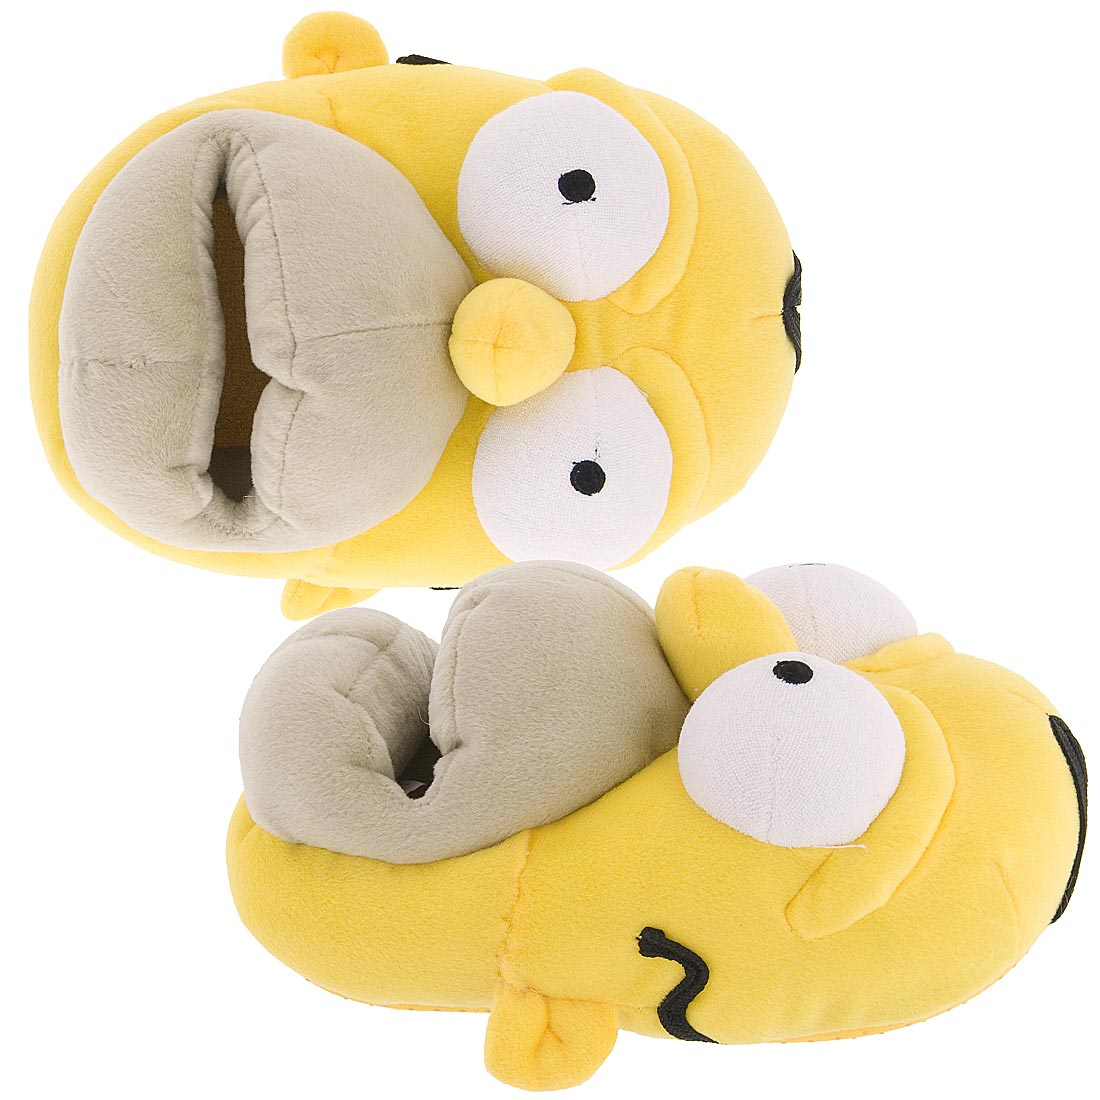 """The Simpsons Homer No Function Men's Slippers. by The Simpsons. $ $ 18 FREE Shipping on eligible orders. Product Features Awesome design inspired by the iconic Homer Simpson and Duff beer. The Simpsons Mens """"Homer Simpson No Function"""" Mule Slippers. by William Lamb."""